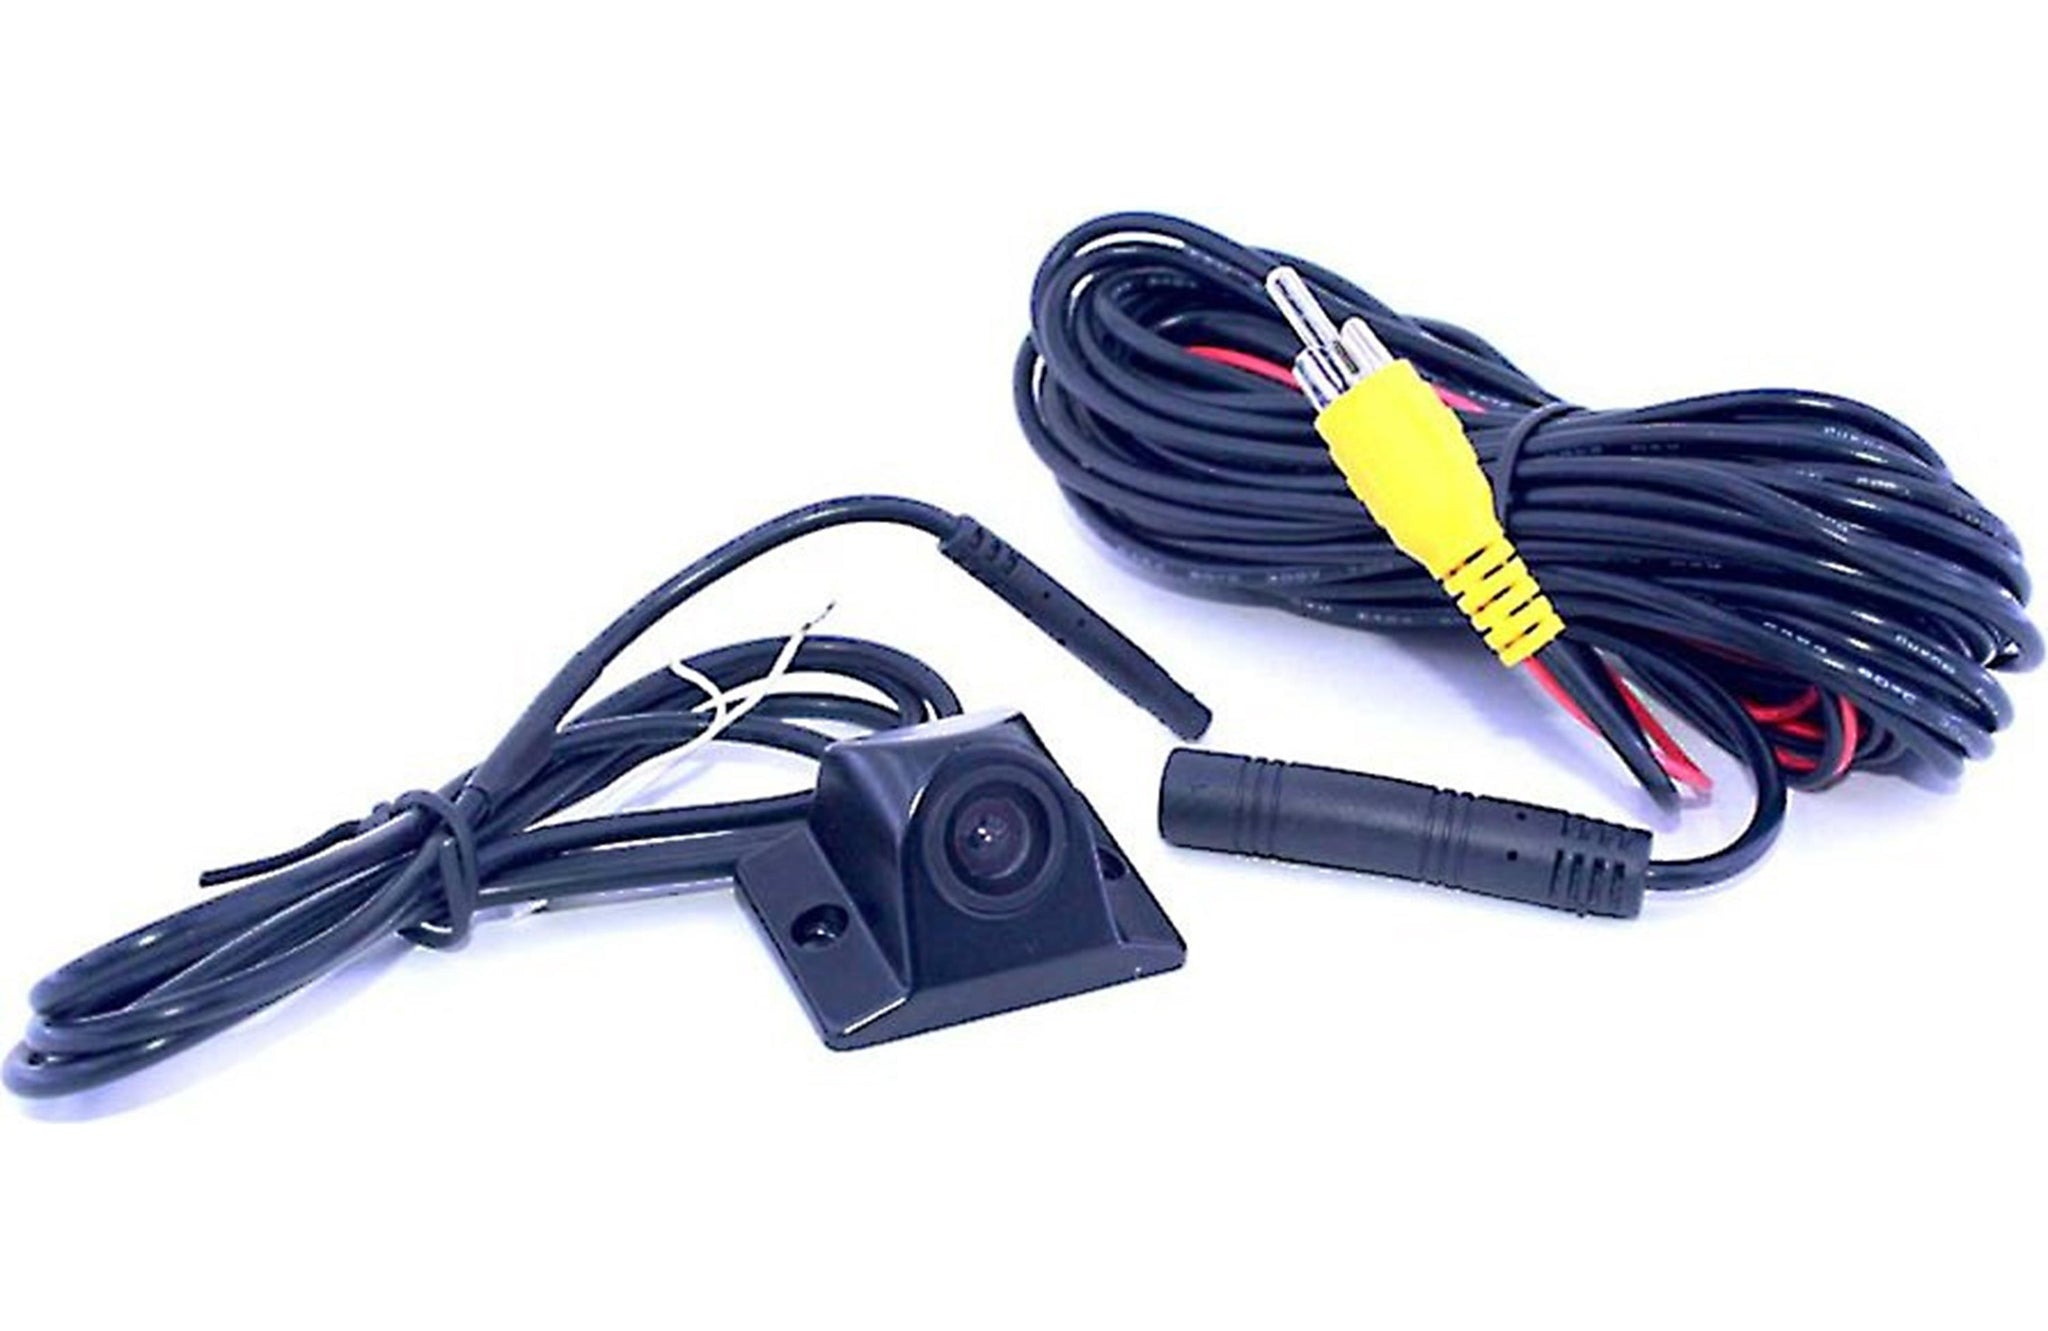 Crux CUL-06 Lip-mount rear-view camera